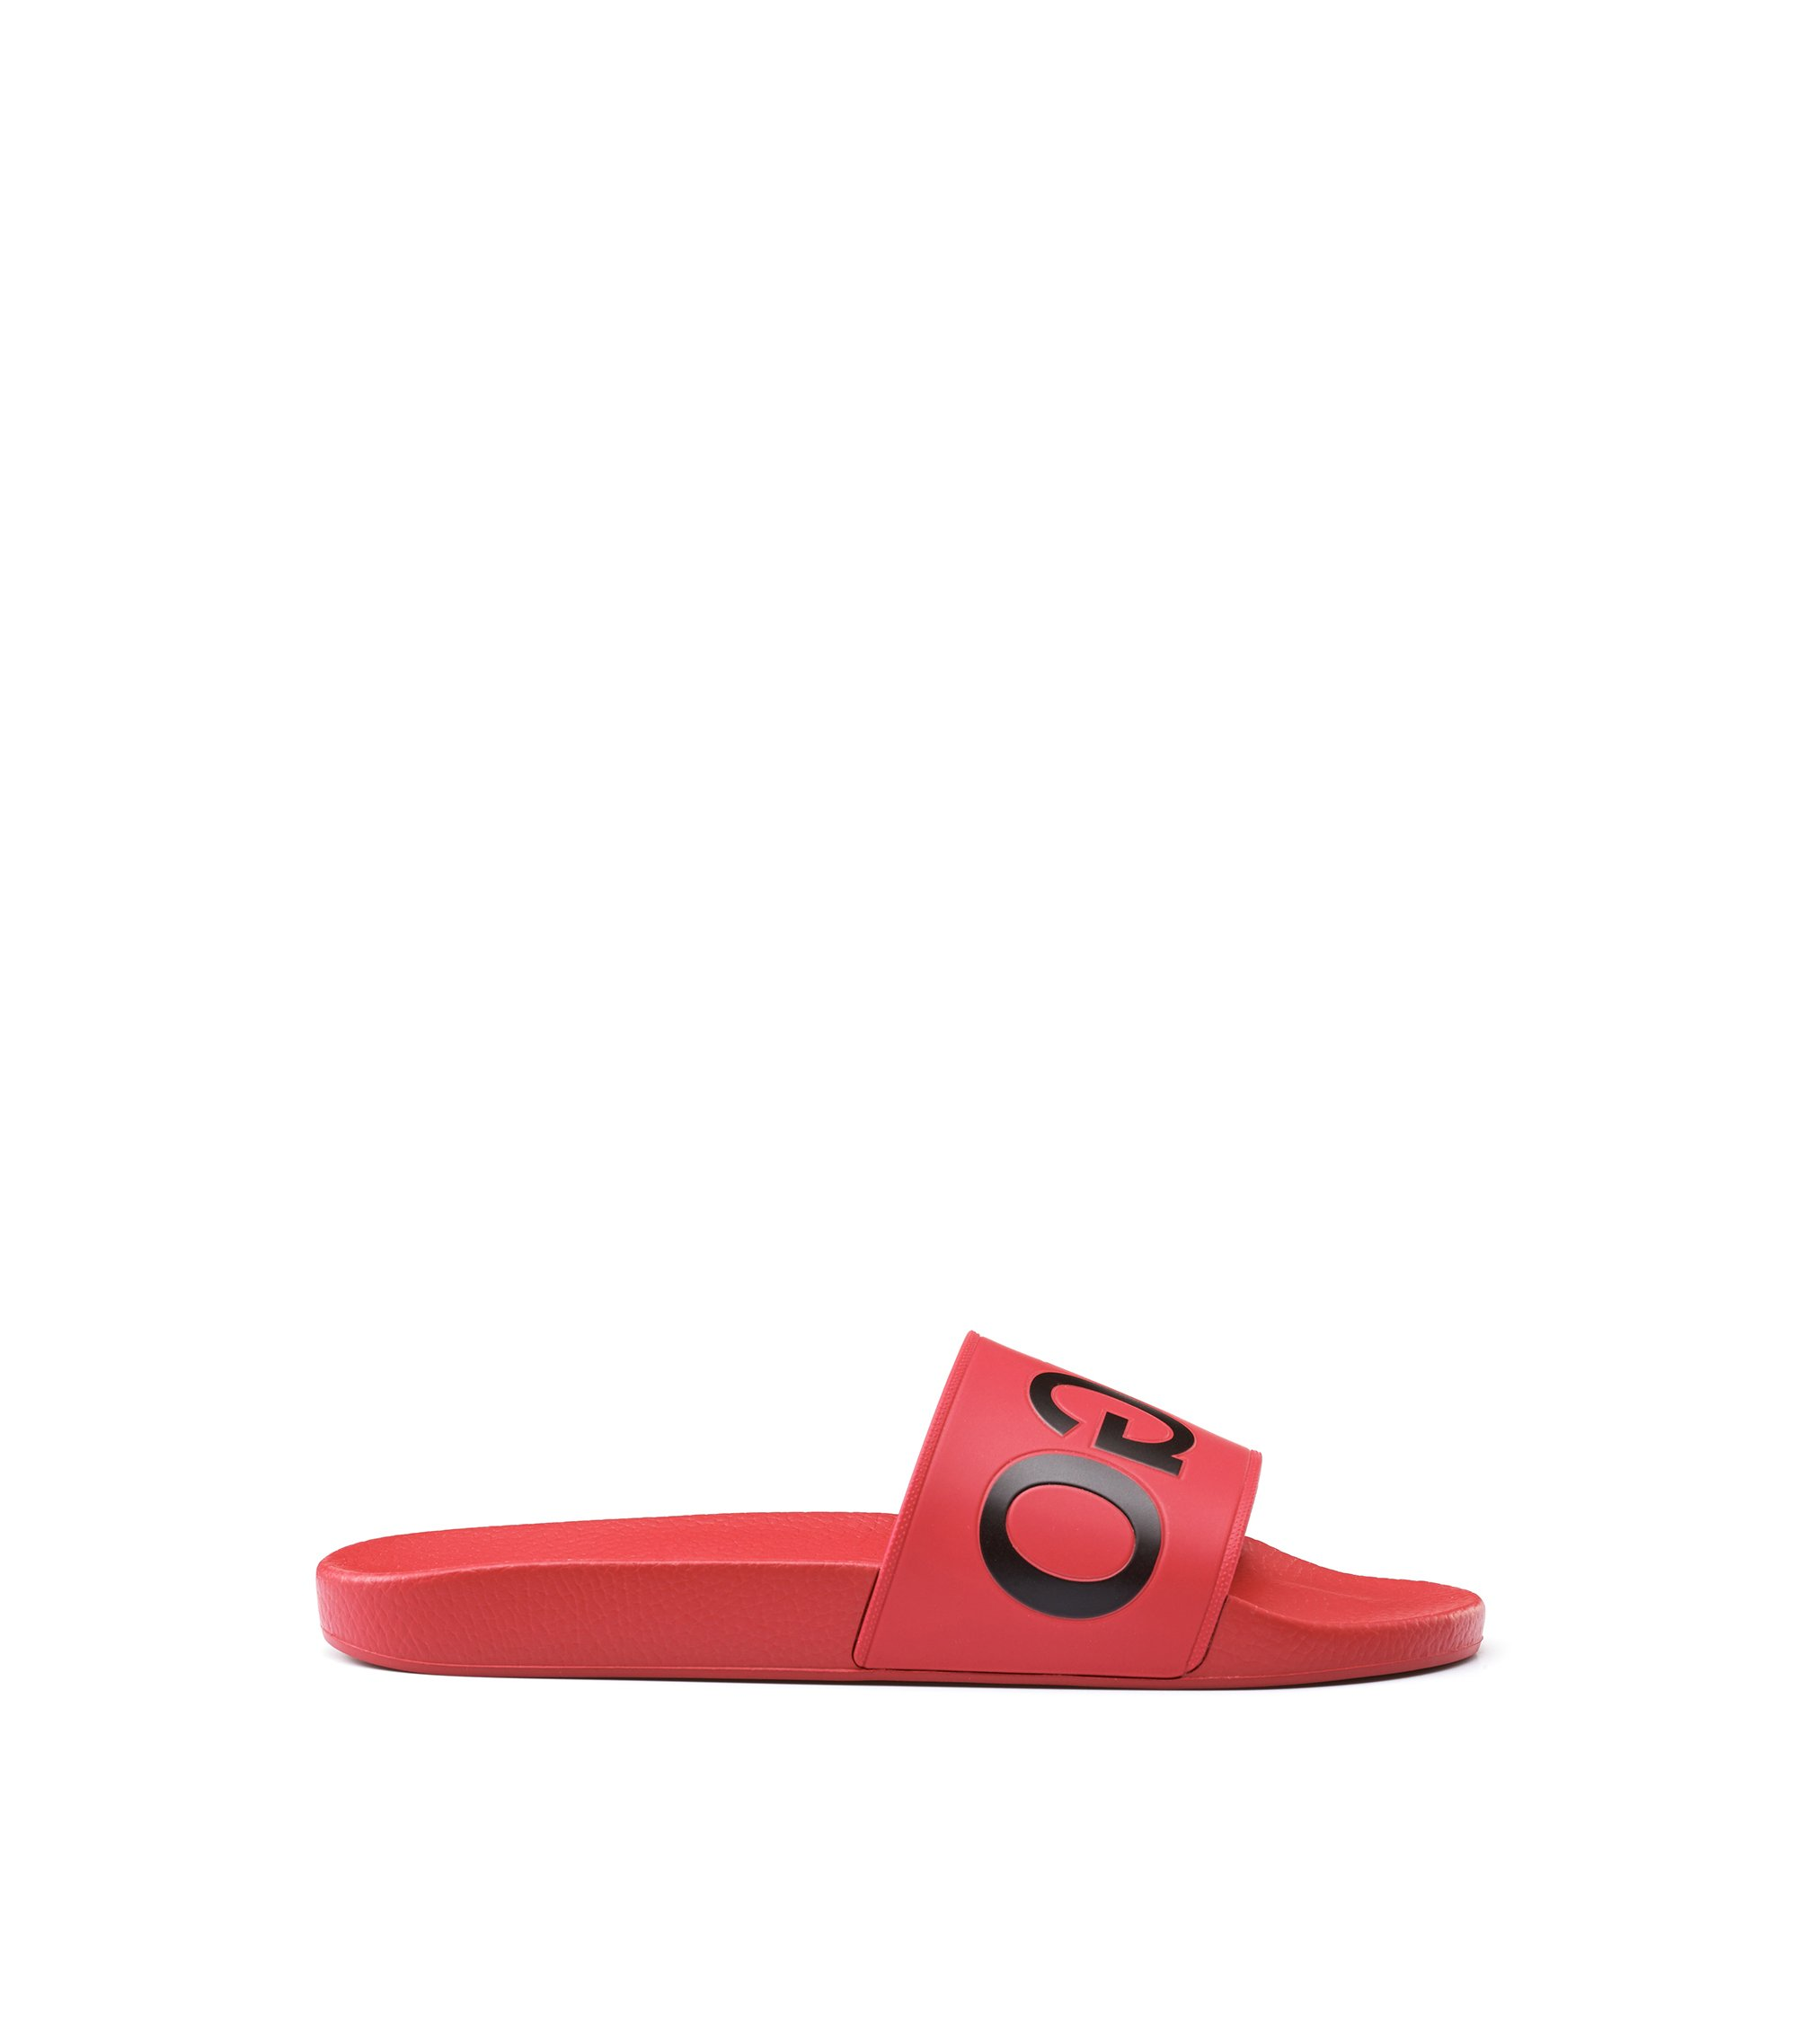 Rubber Slip-On Sandals | Timeout Slip RB, Red